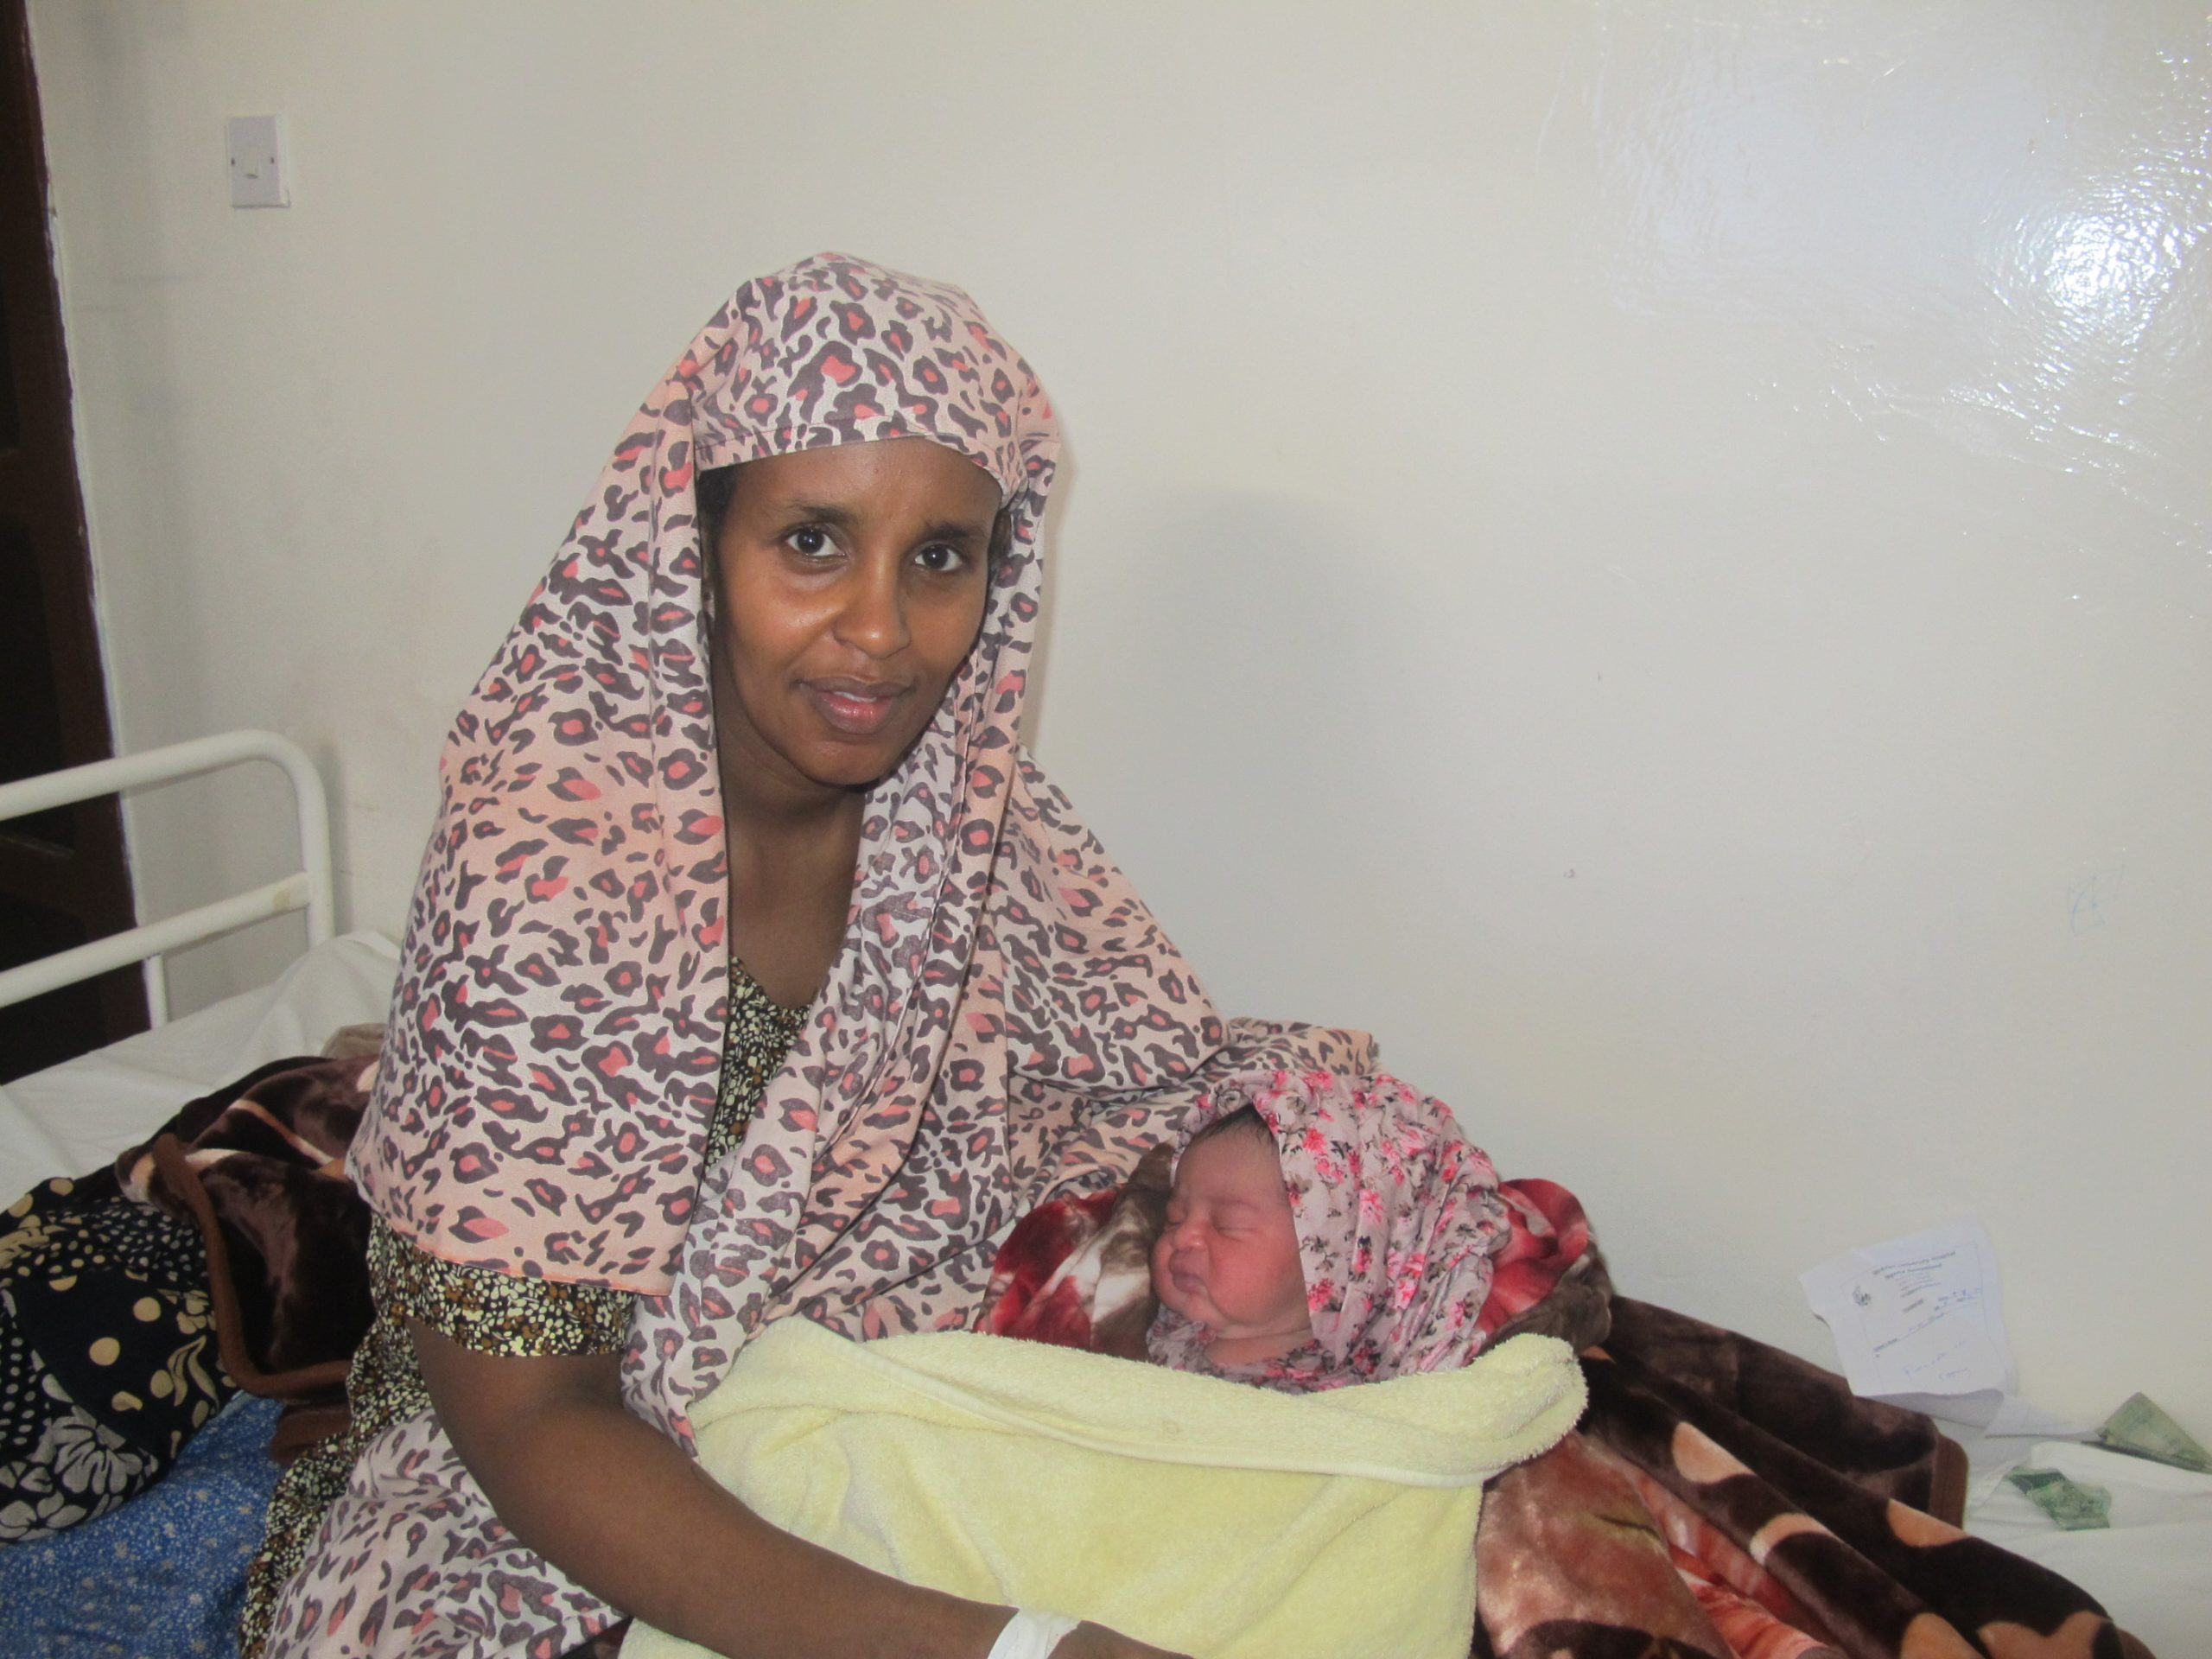 Young mother shows her new born baby to the camera at Edna Adan's Hospital in Somaliland